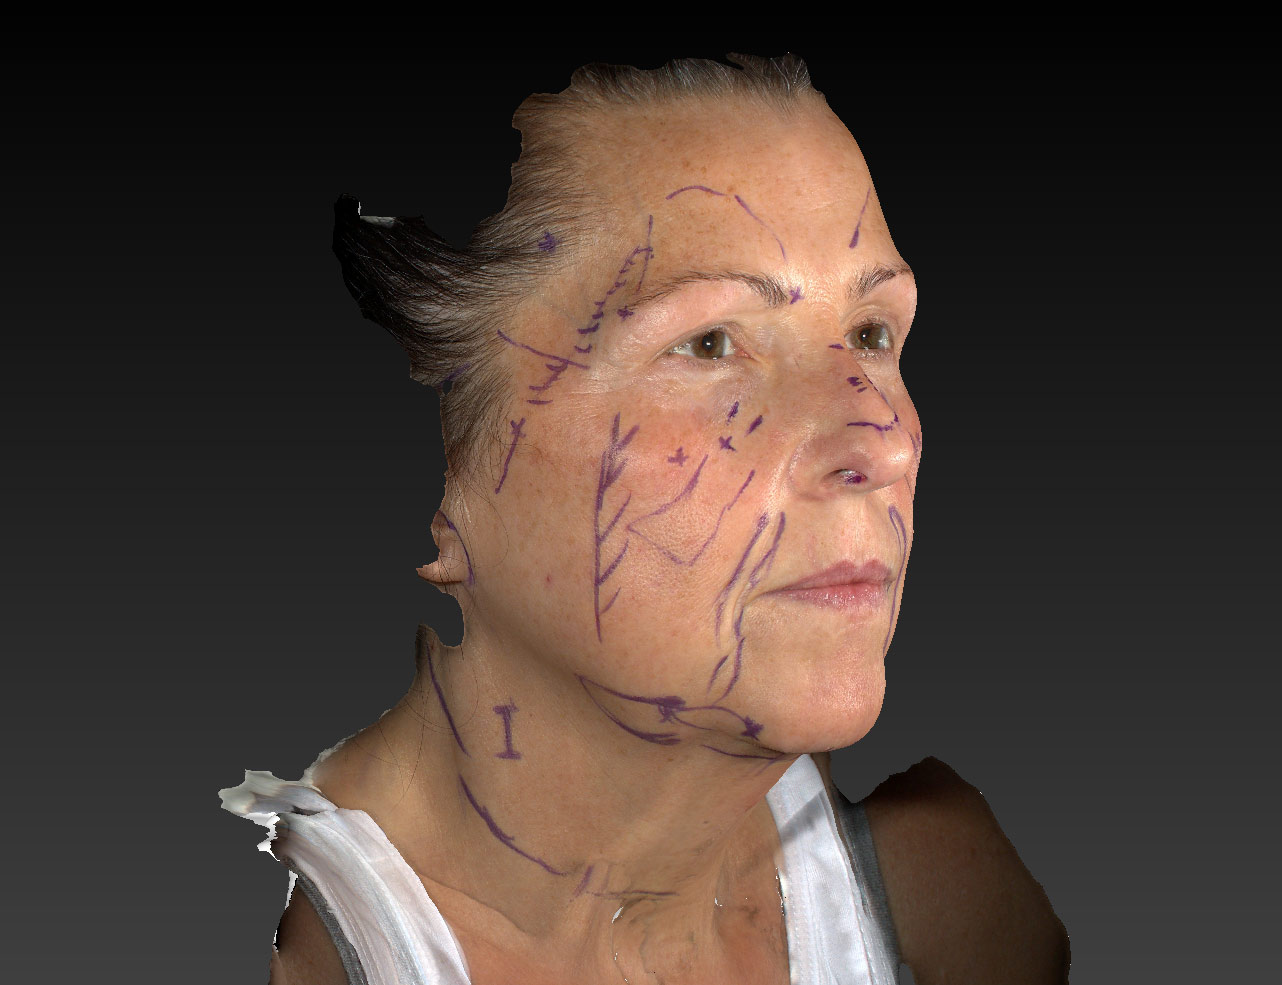 3D Photo. Woman's face, Markings PreOp SanDal